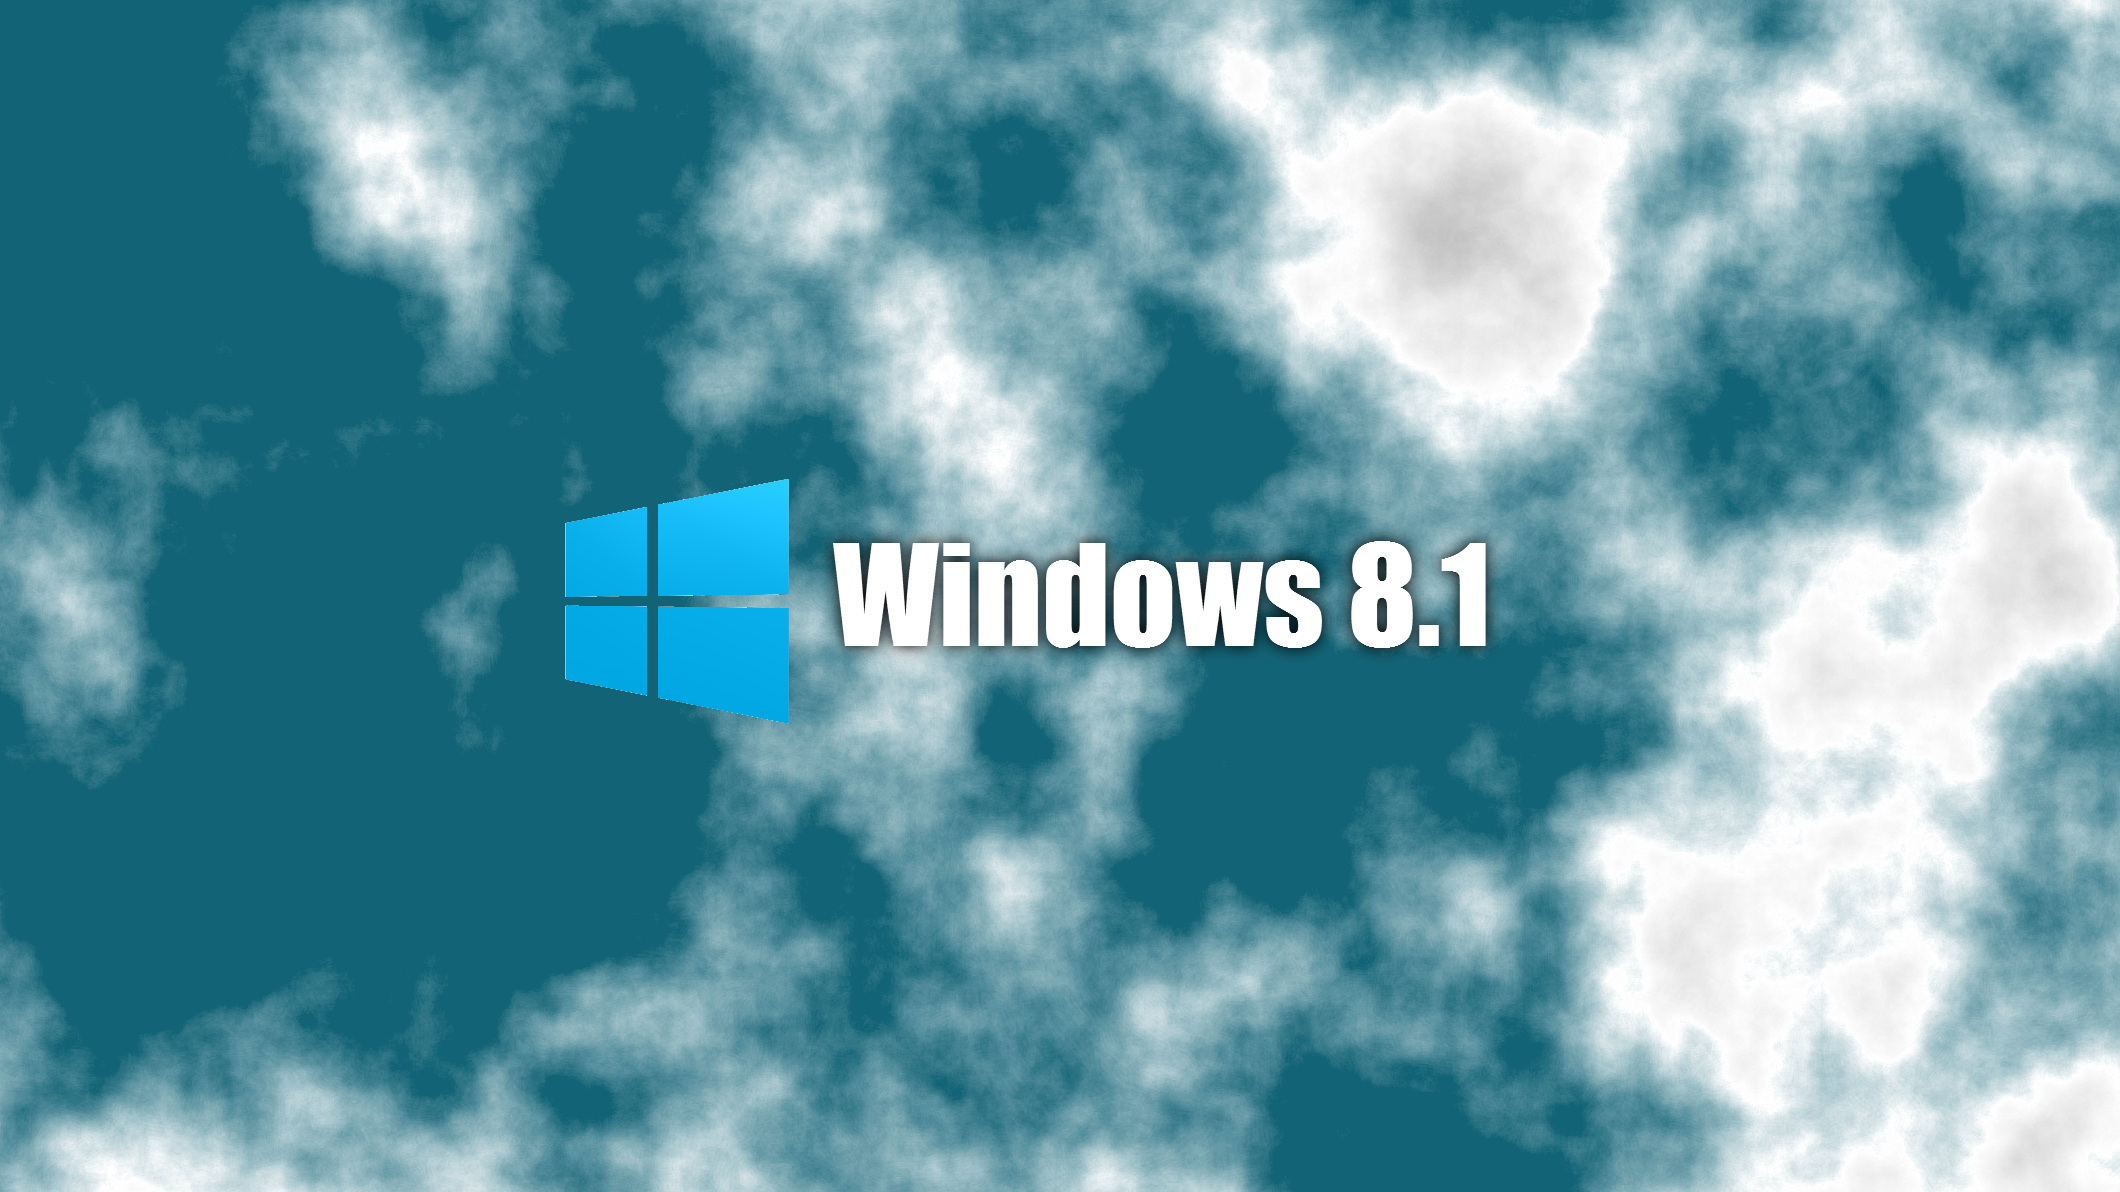 windows 8 1 desktop background by theradiationmaster on